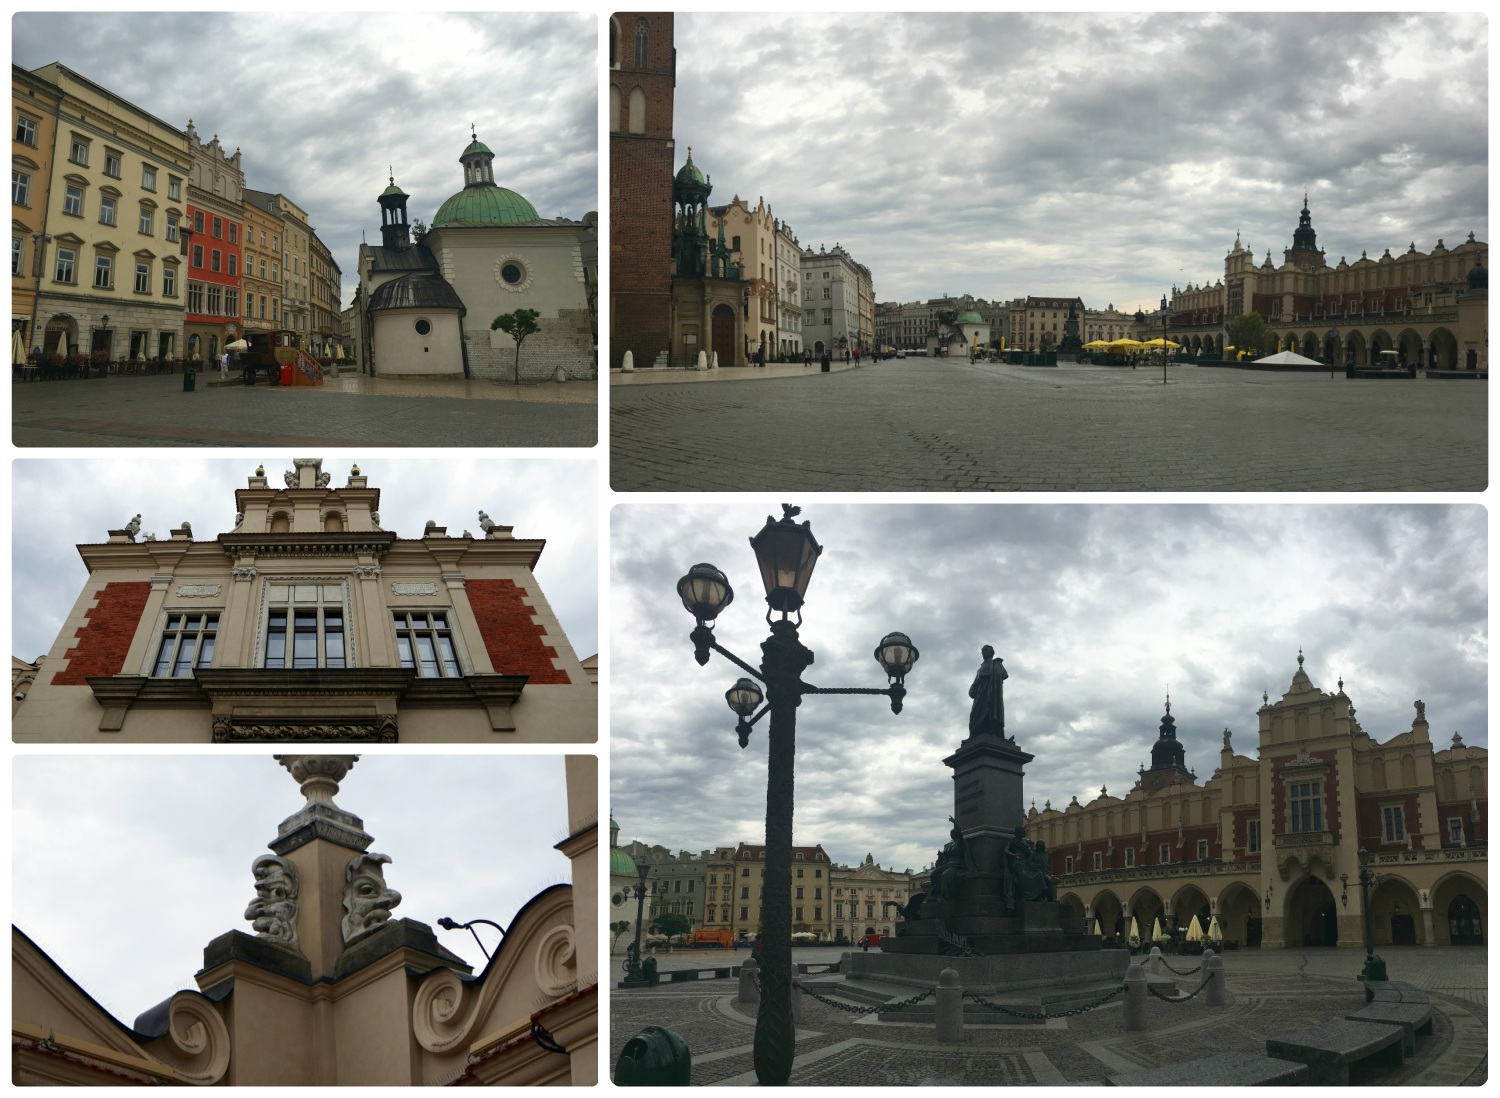 The size of Old Town Square in Krakow, Poland is impressive, but don't overlook the details of the buildings, they're beautiful!